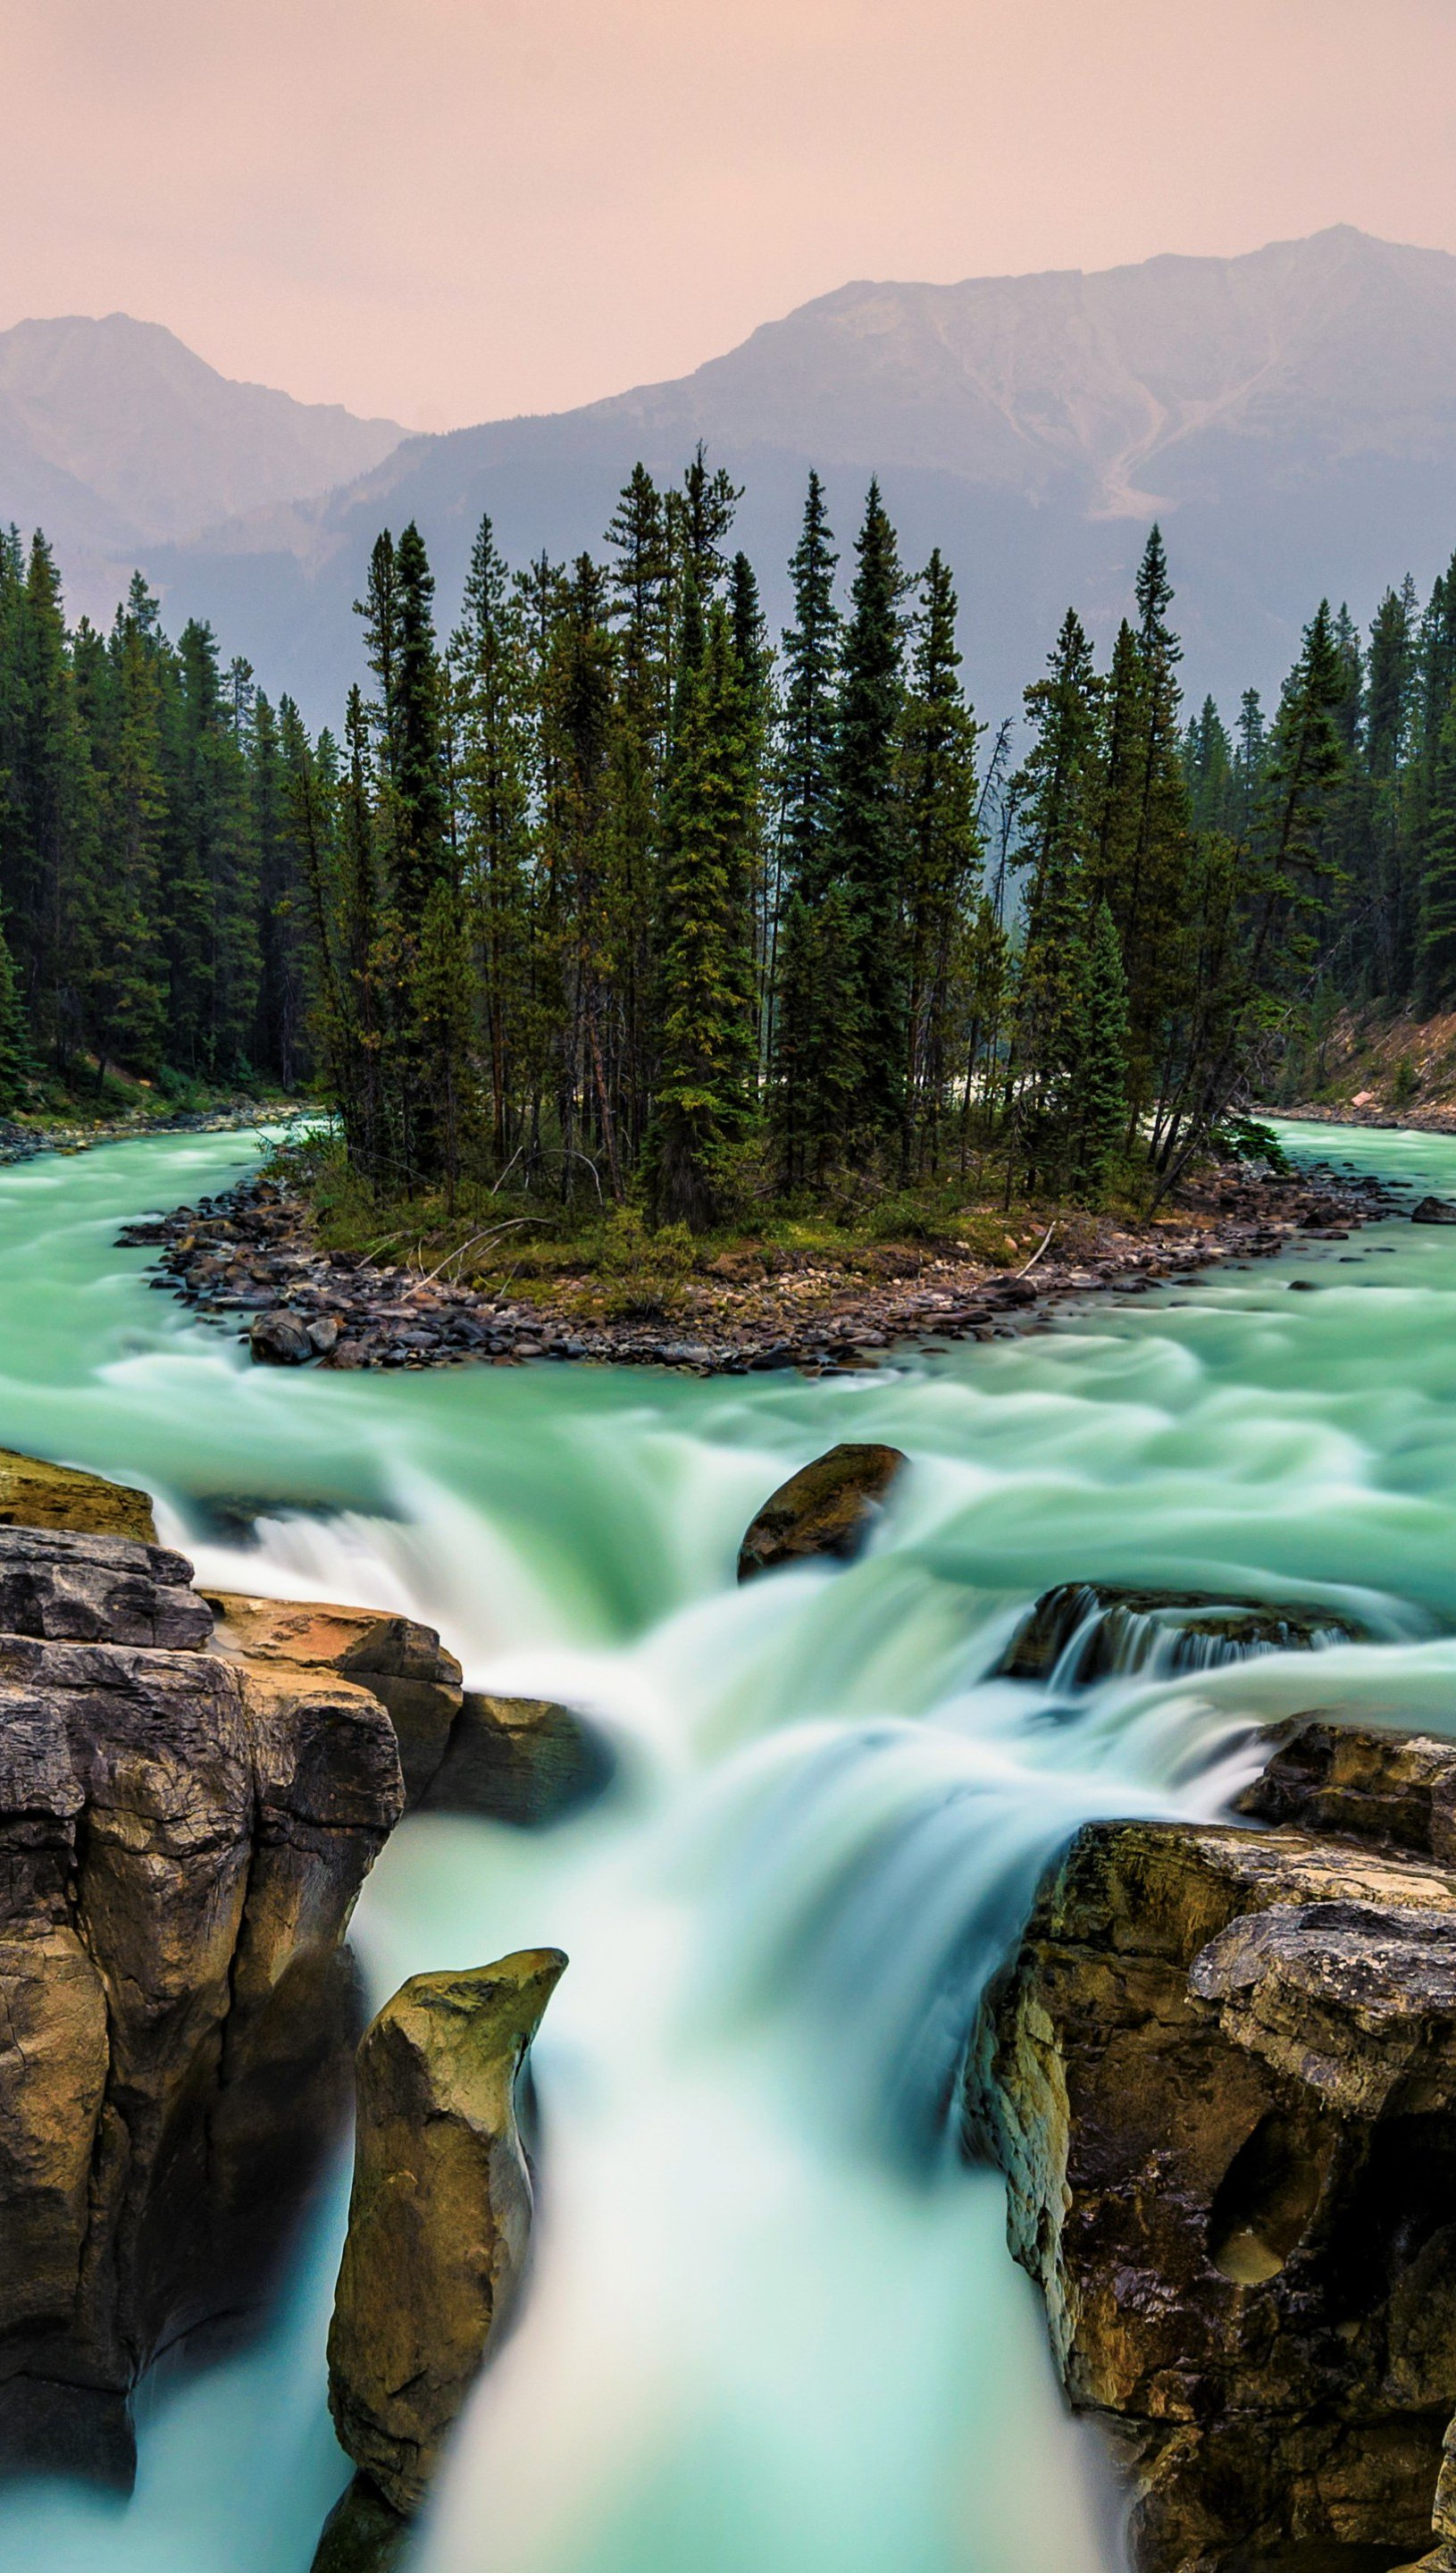 Wallpaper Waterfall Jasper National Park Canada Vertical